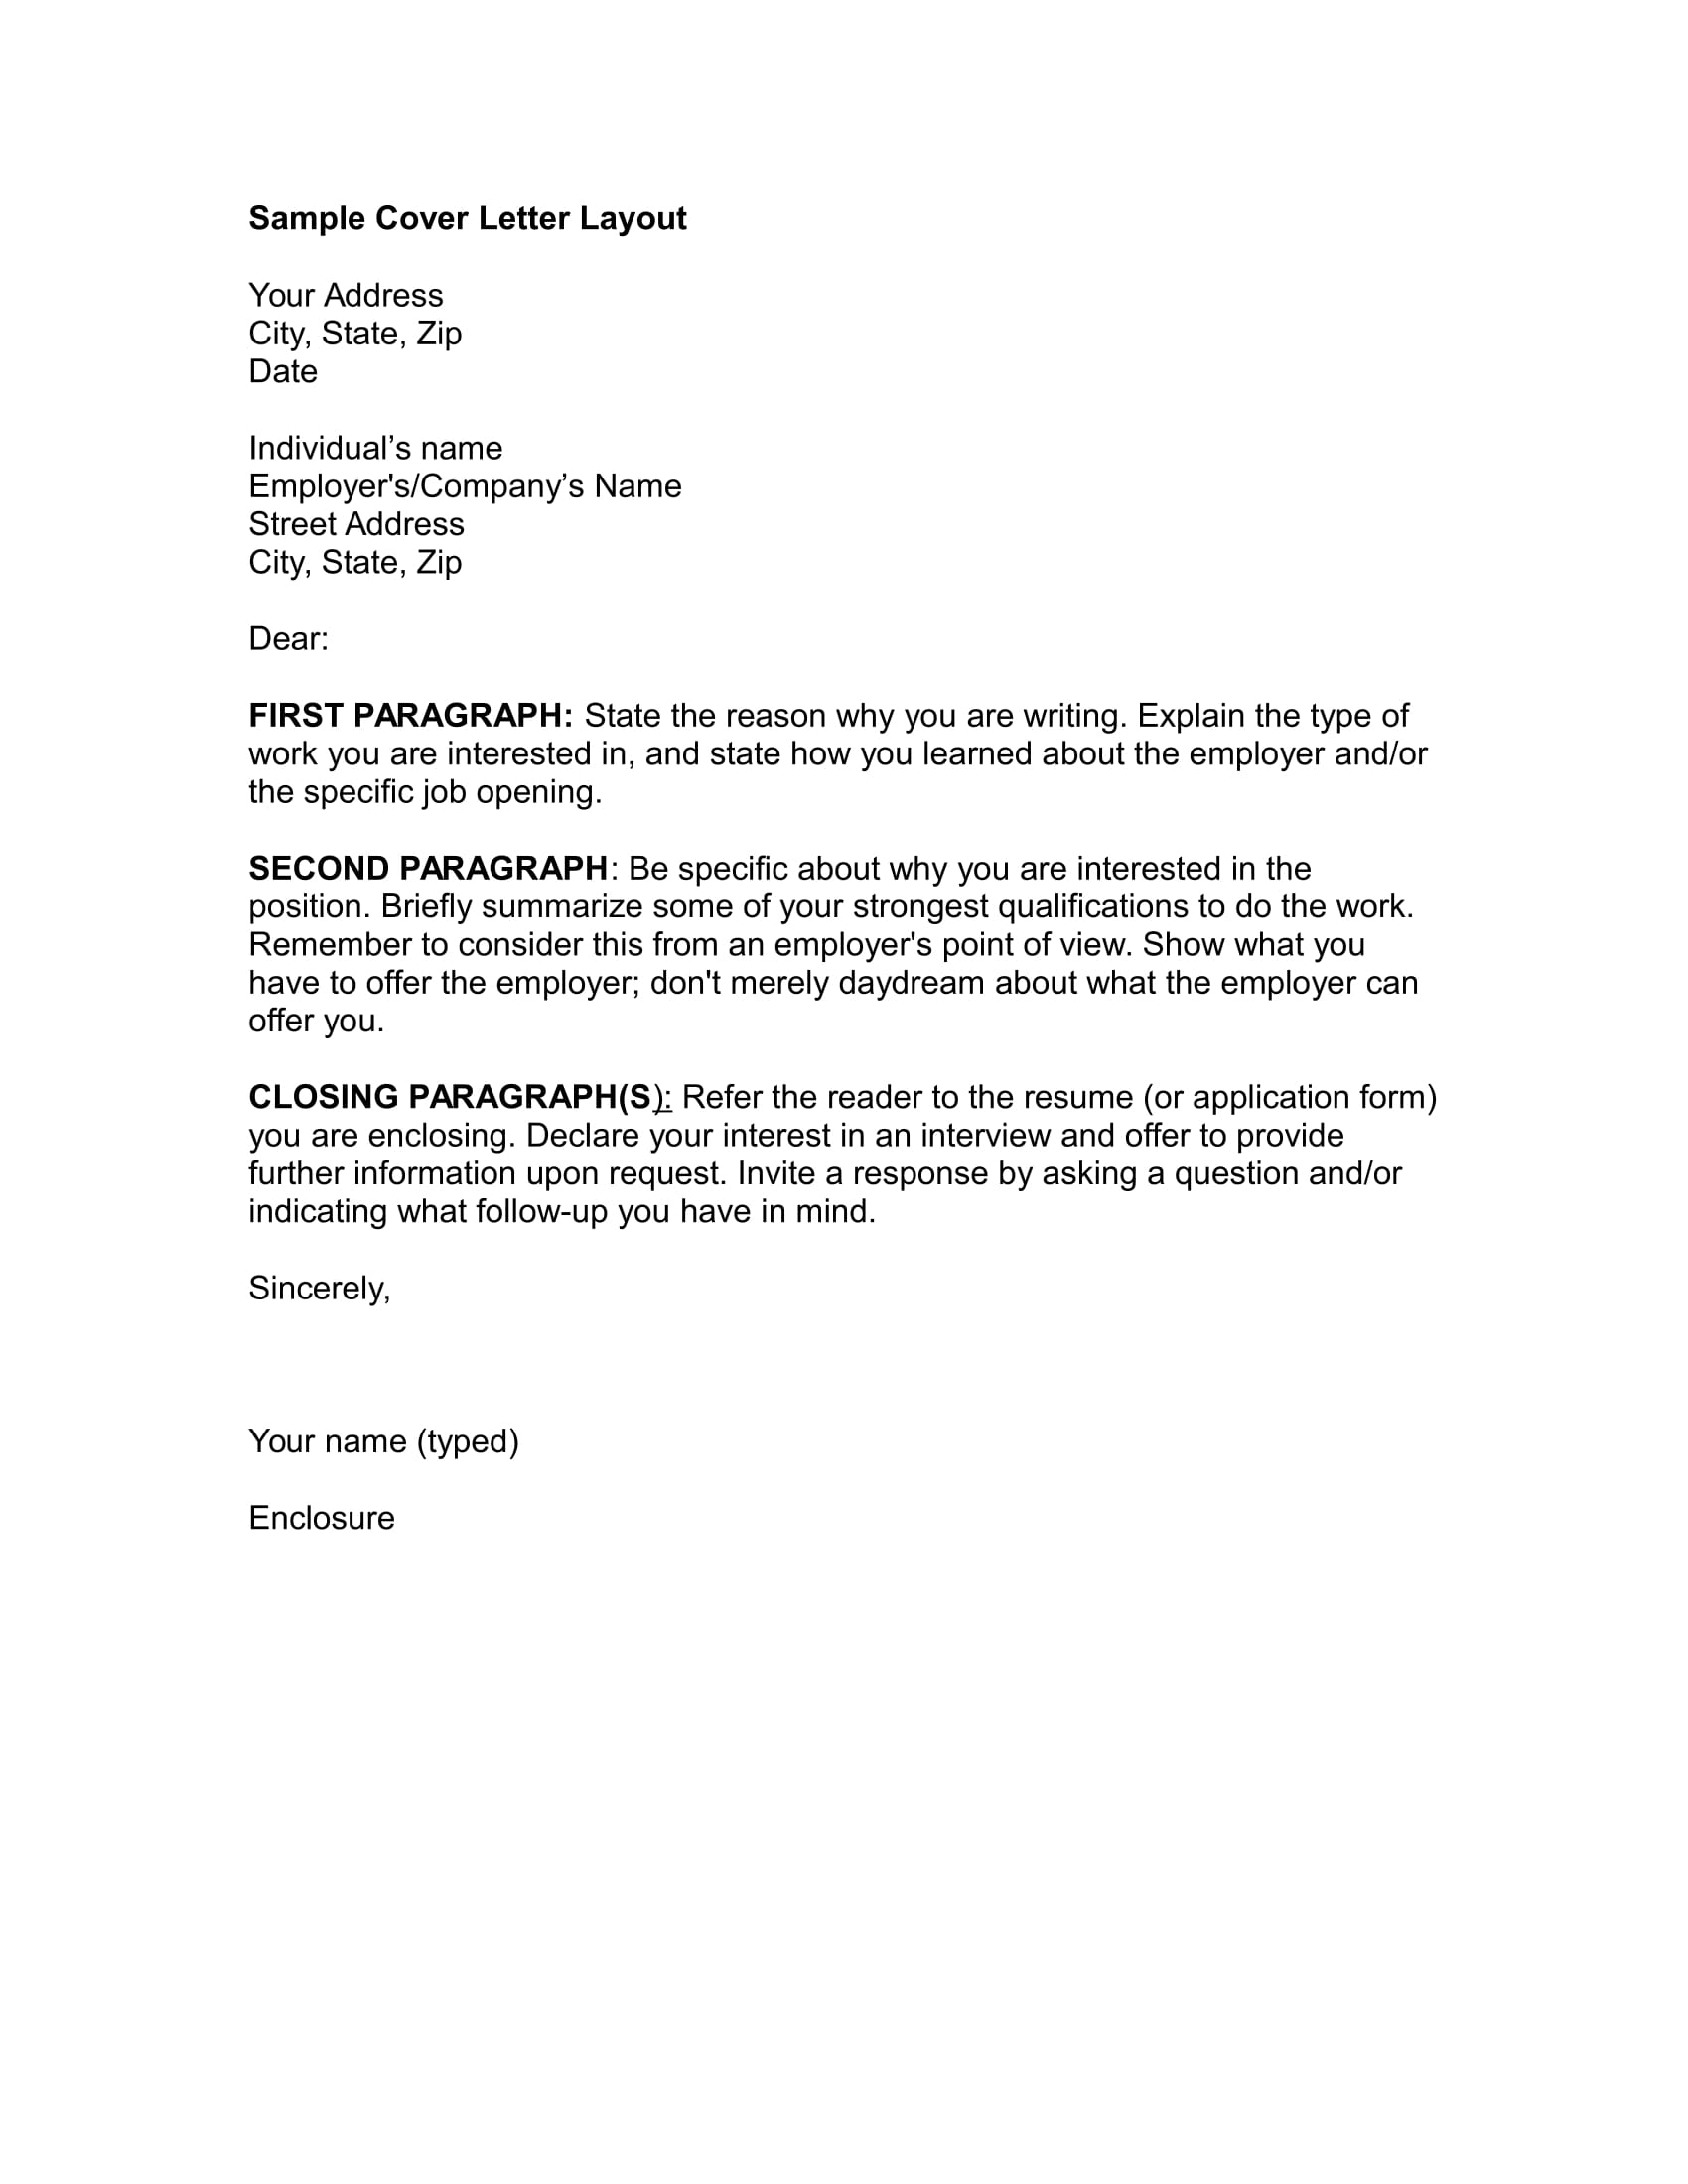 19 job application letter examples word cover letter layout example spiritdancerdesigns Image collections